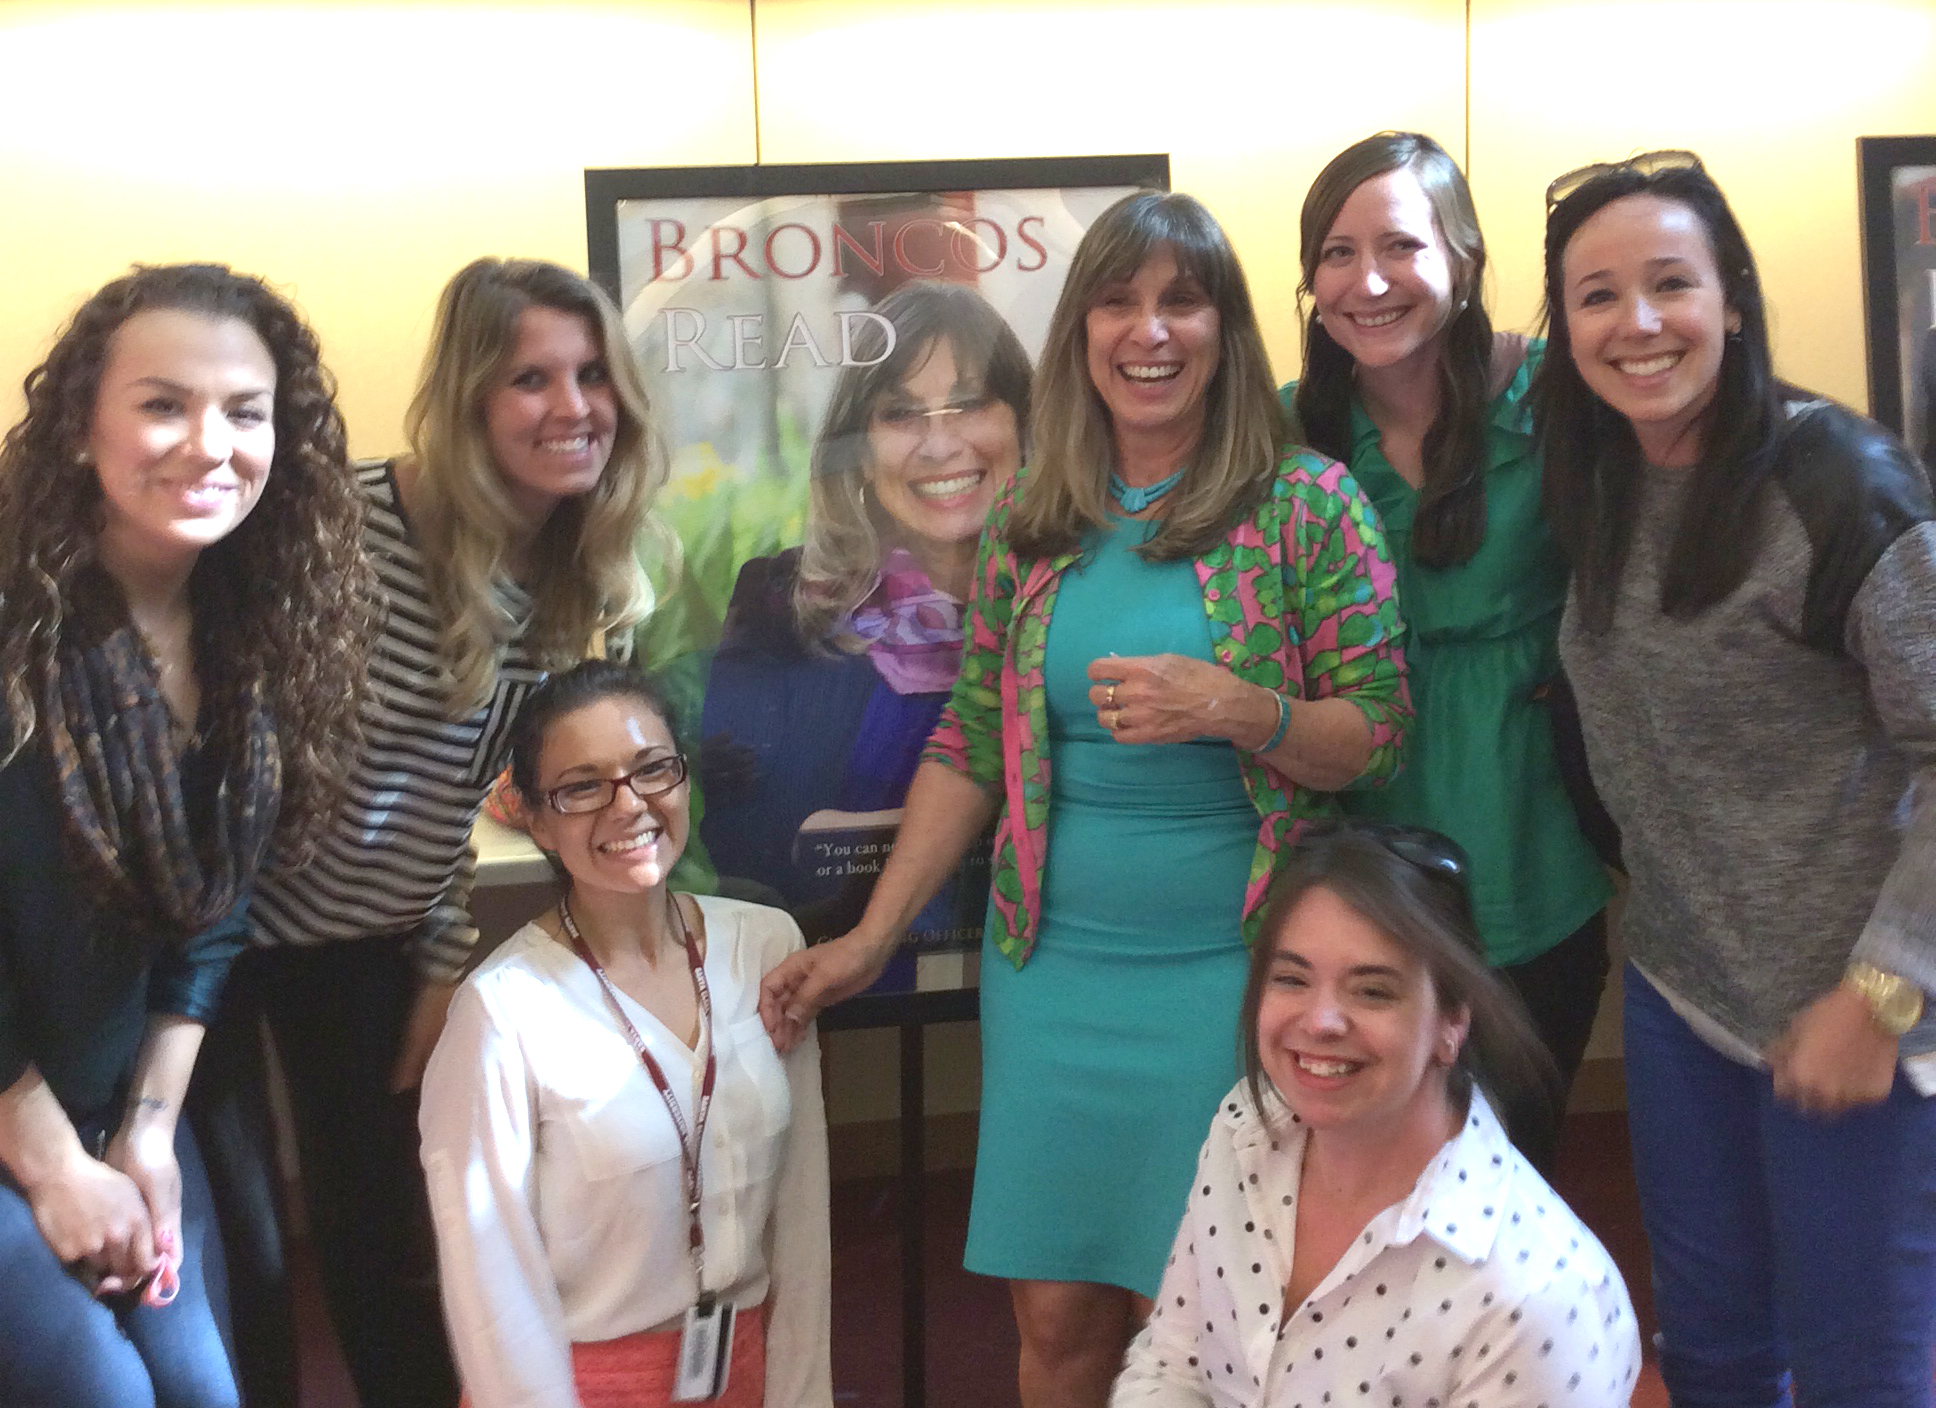 Leslie Leonetti '73 (Class Giving Officer for the Office of Development) poses with colleagues that nominated her for the 2015 Broncos Read poster.